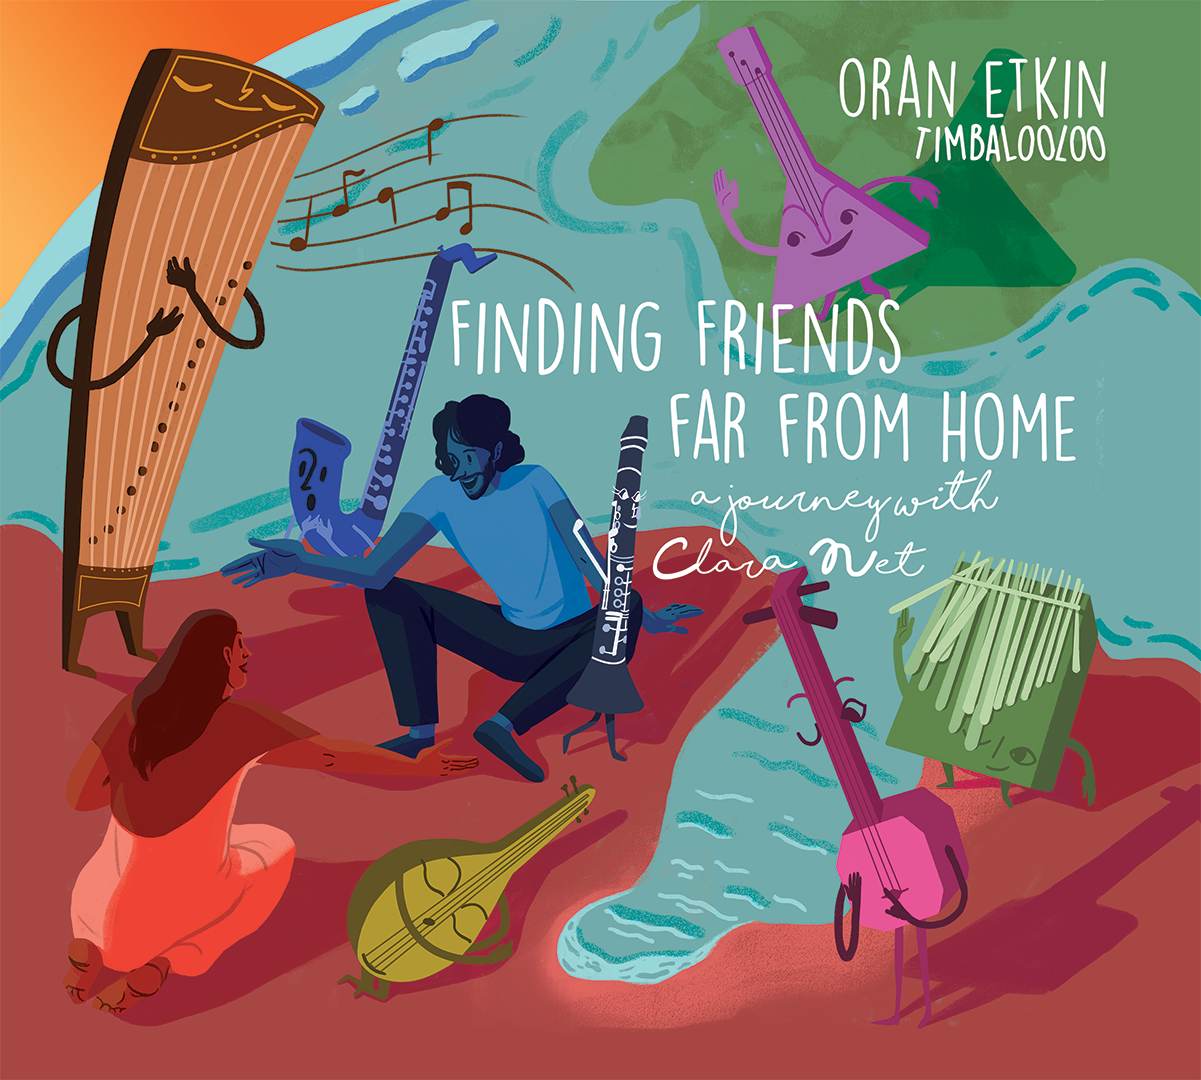 NEW RELEASE: Oran Etkin's Timbalooloo to Release 'Finding Friends Far from Home: A Journey With Clara Net' 8/30